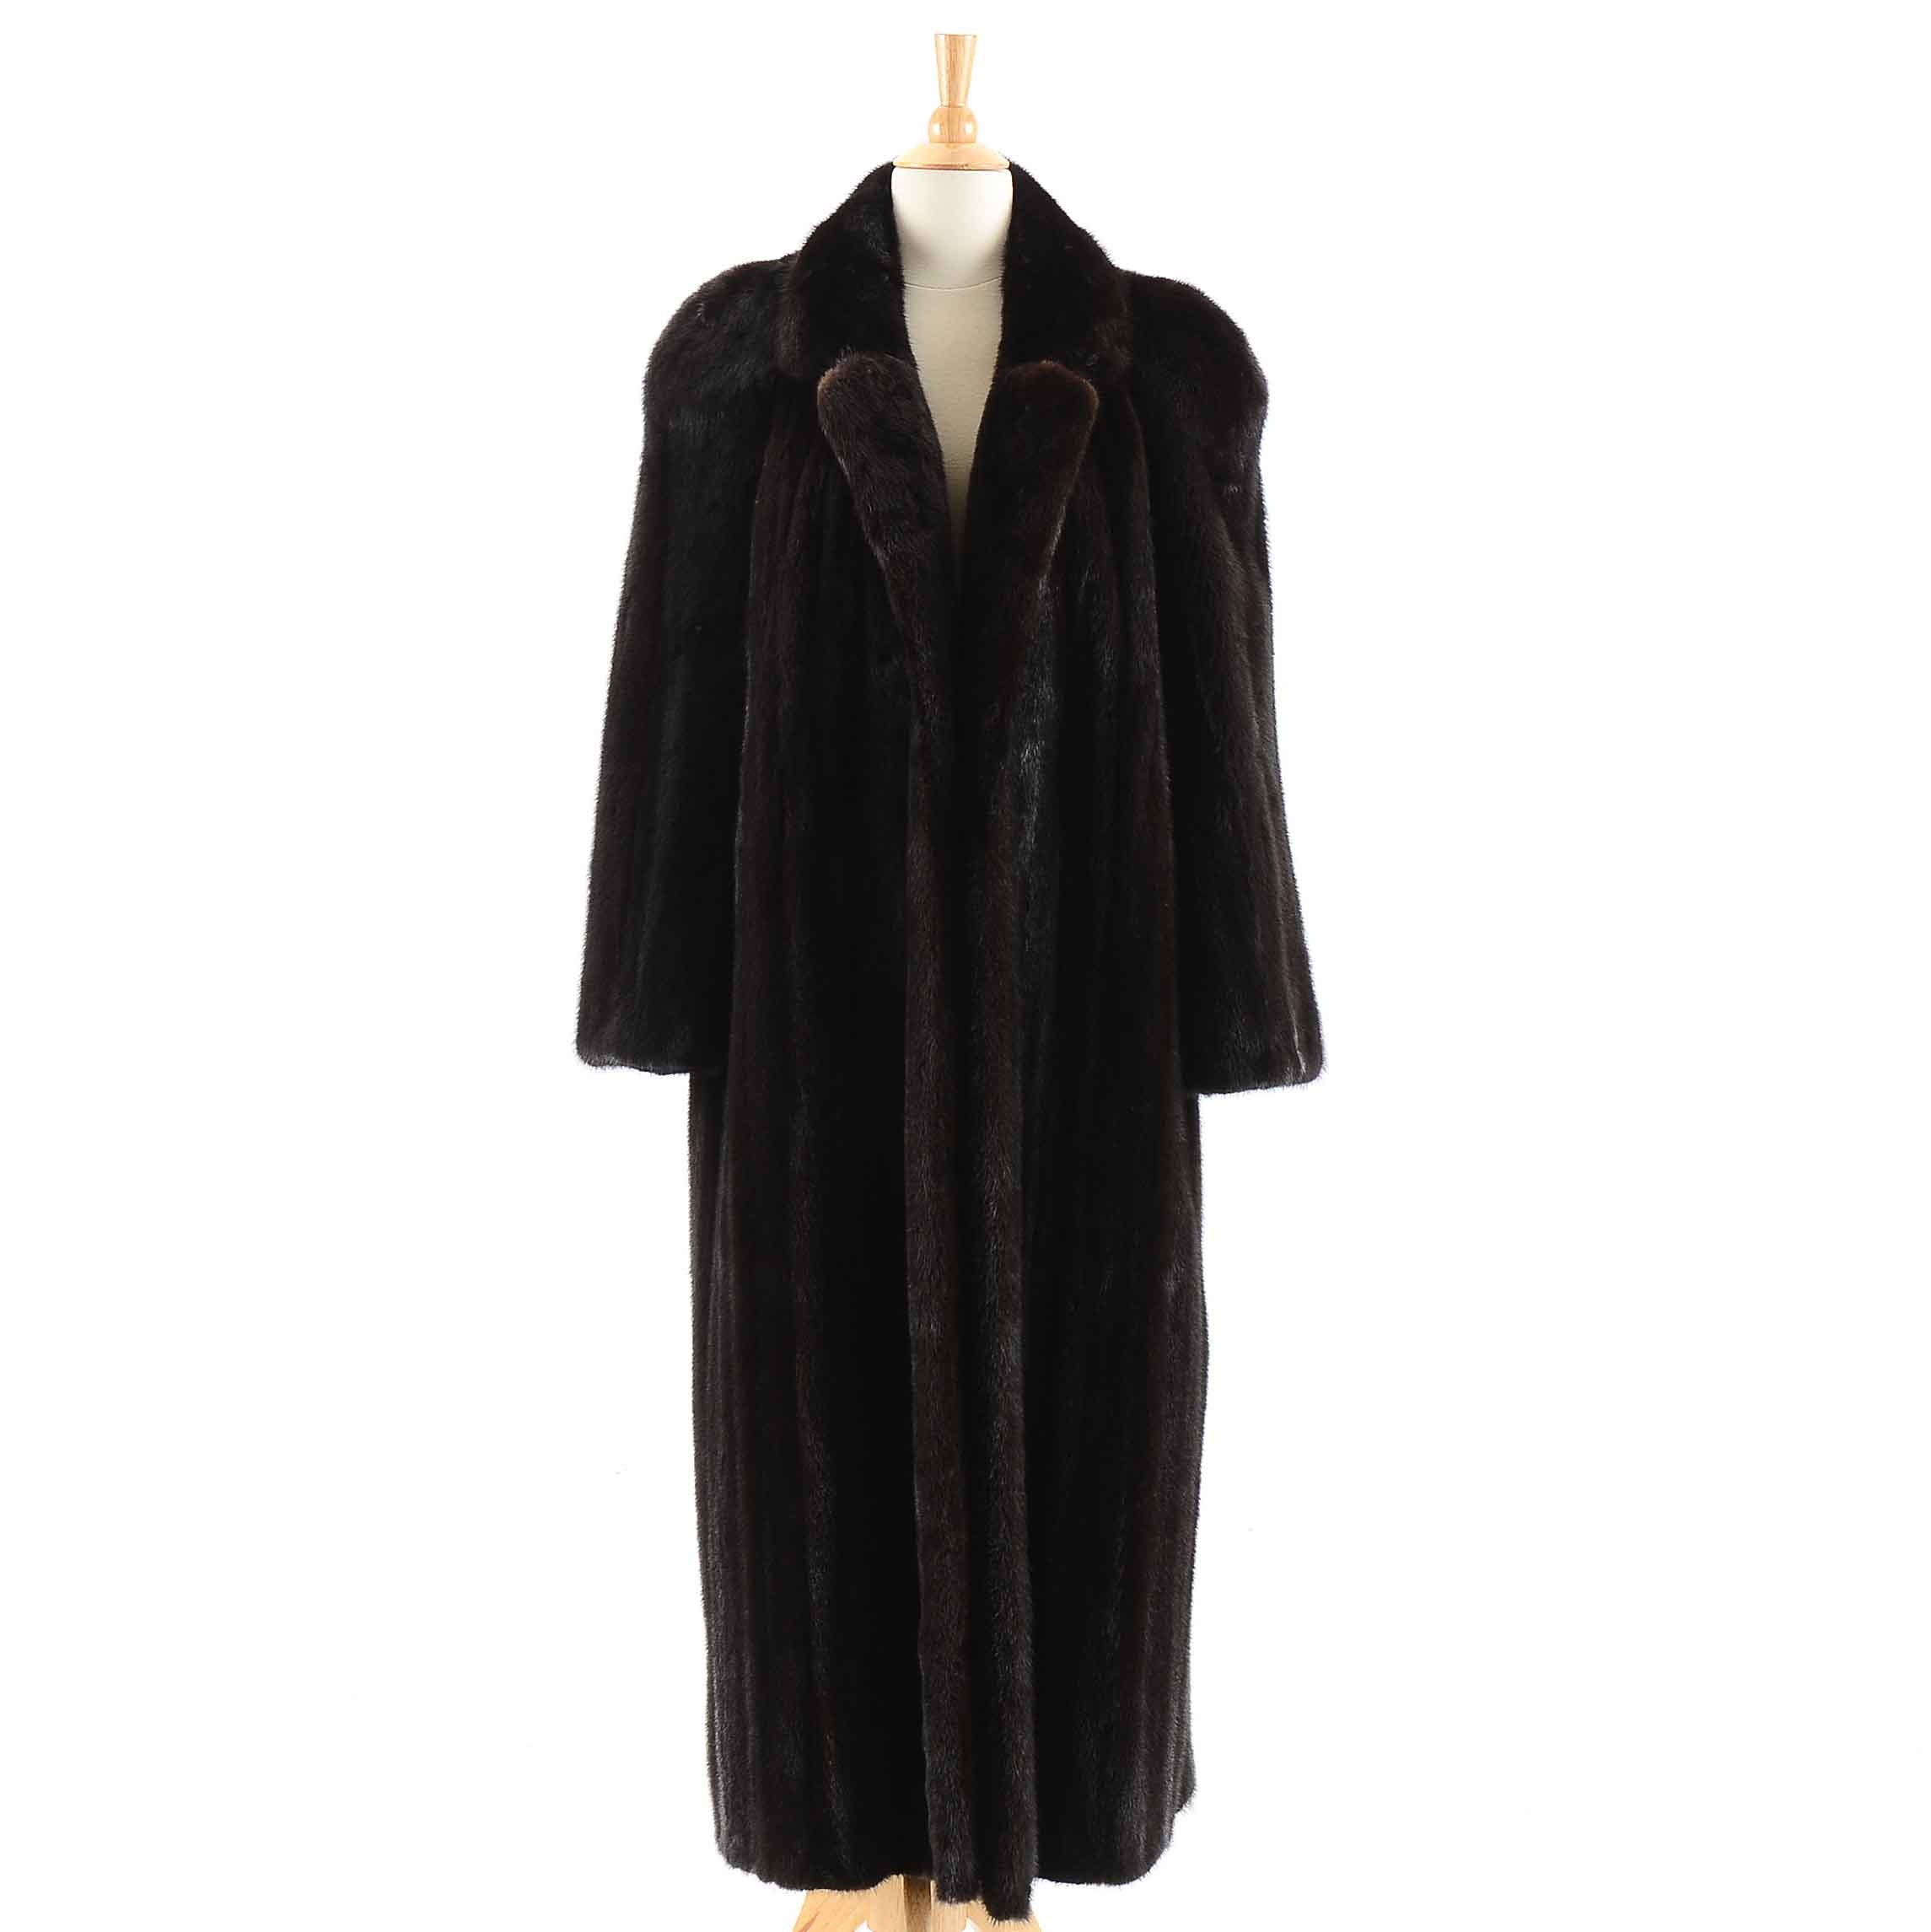 Vintage Full-Length Ranched Mink Fur Coat